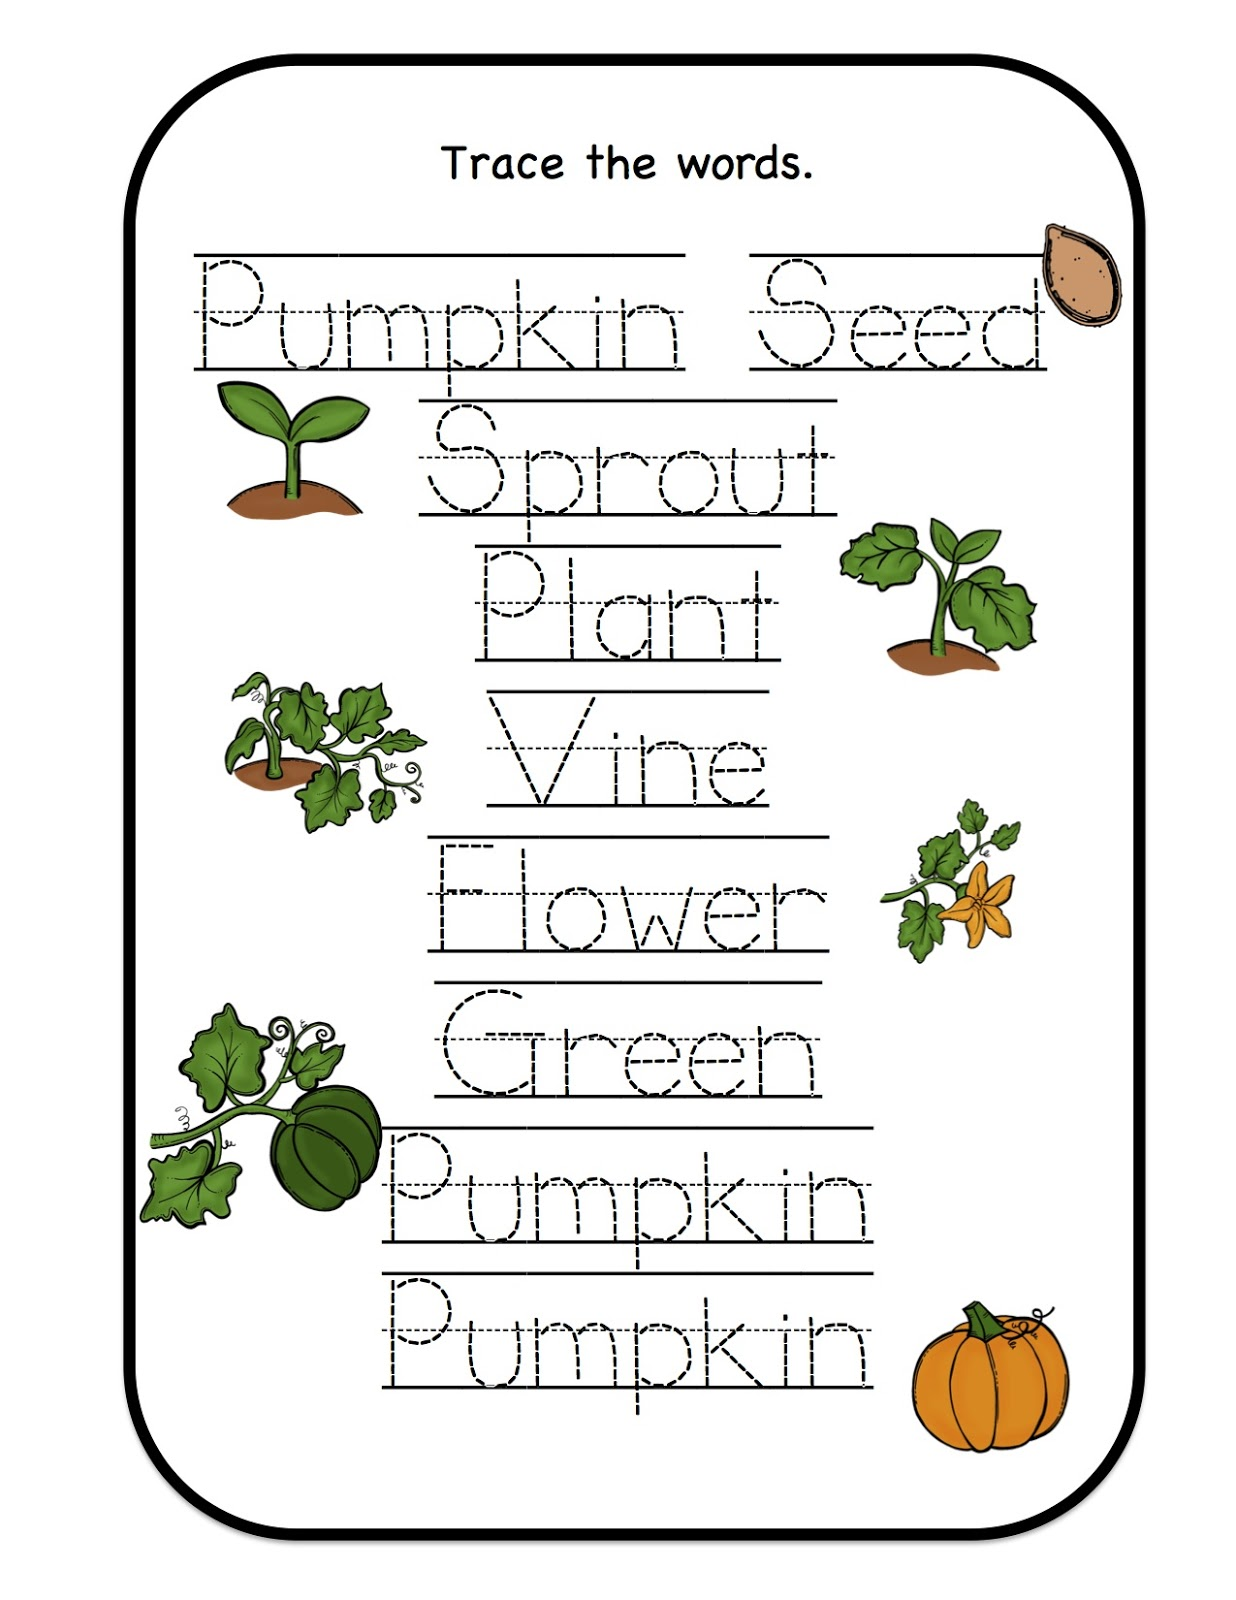 Crazy image for pumpkin life cycle printable